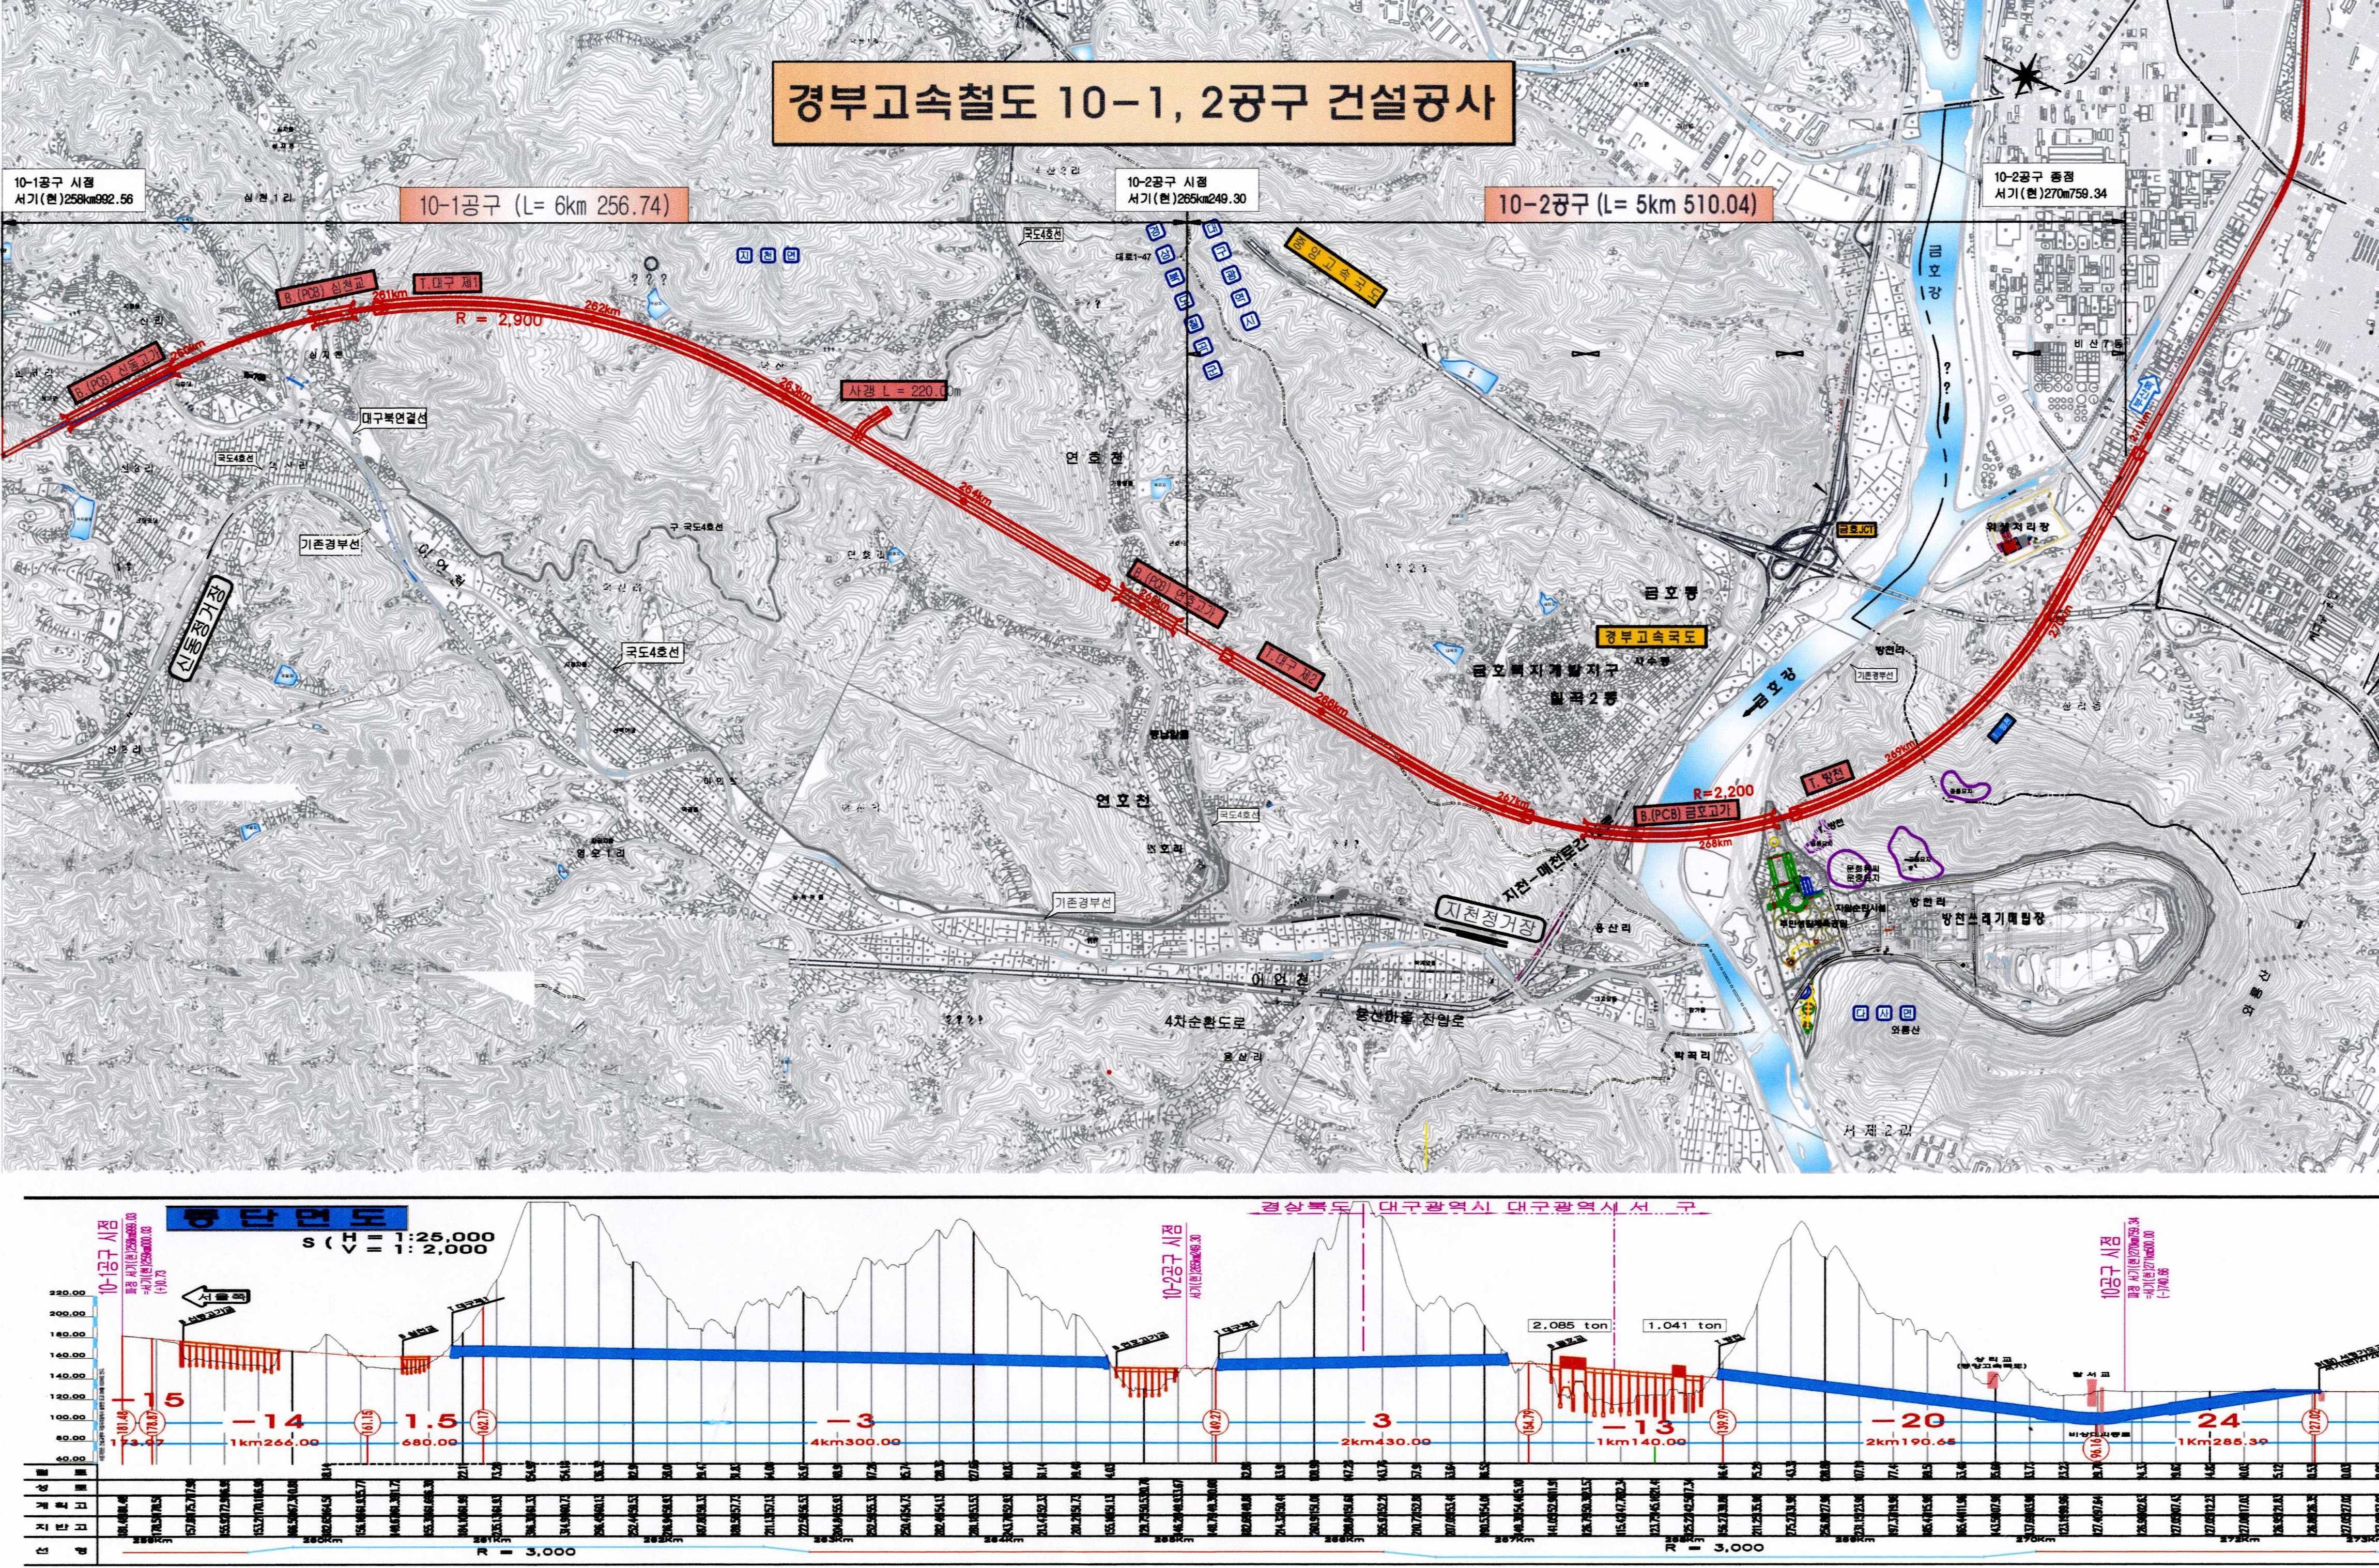 Construction Supervision and Contract Management for Construction of Gyeongbu High Speed Railway (Lot No.10-1 & 2)